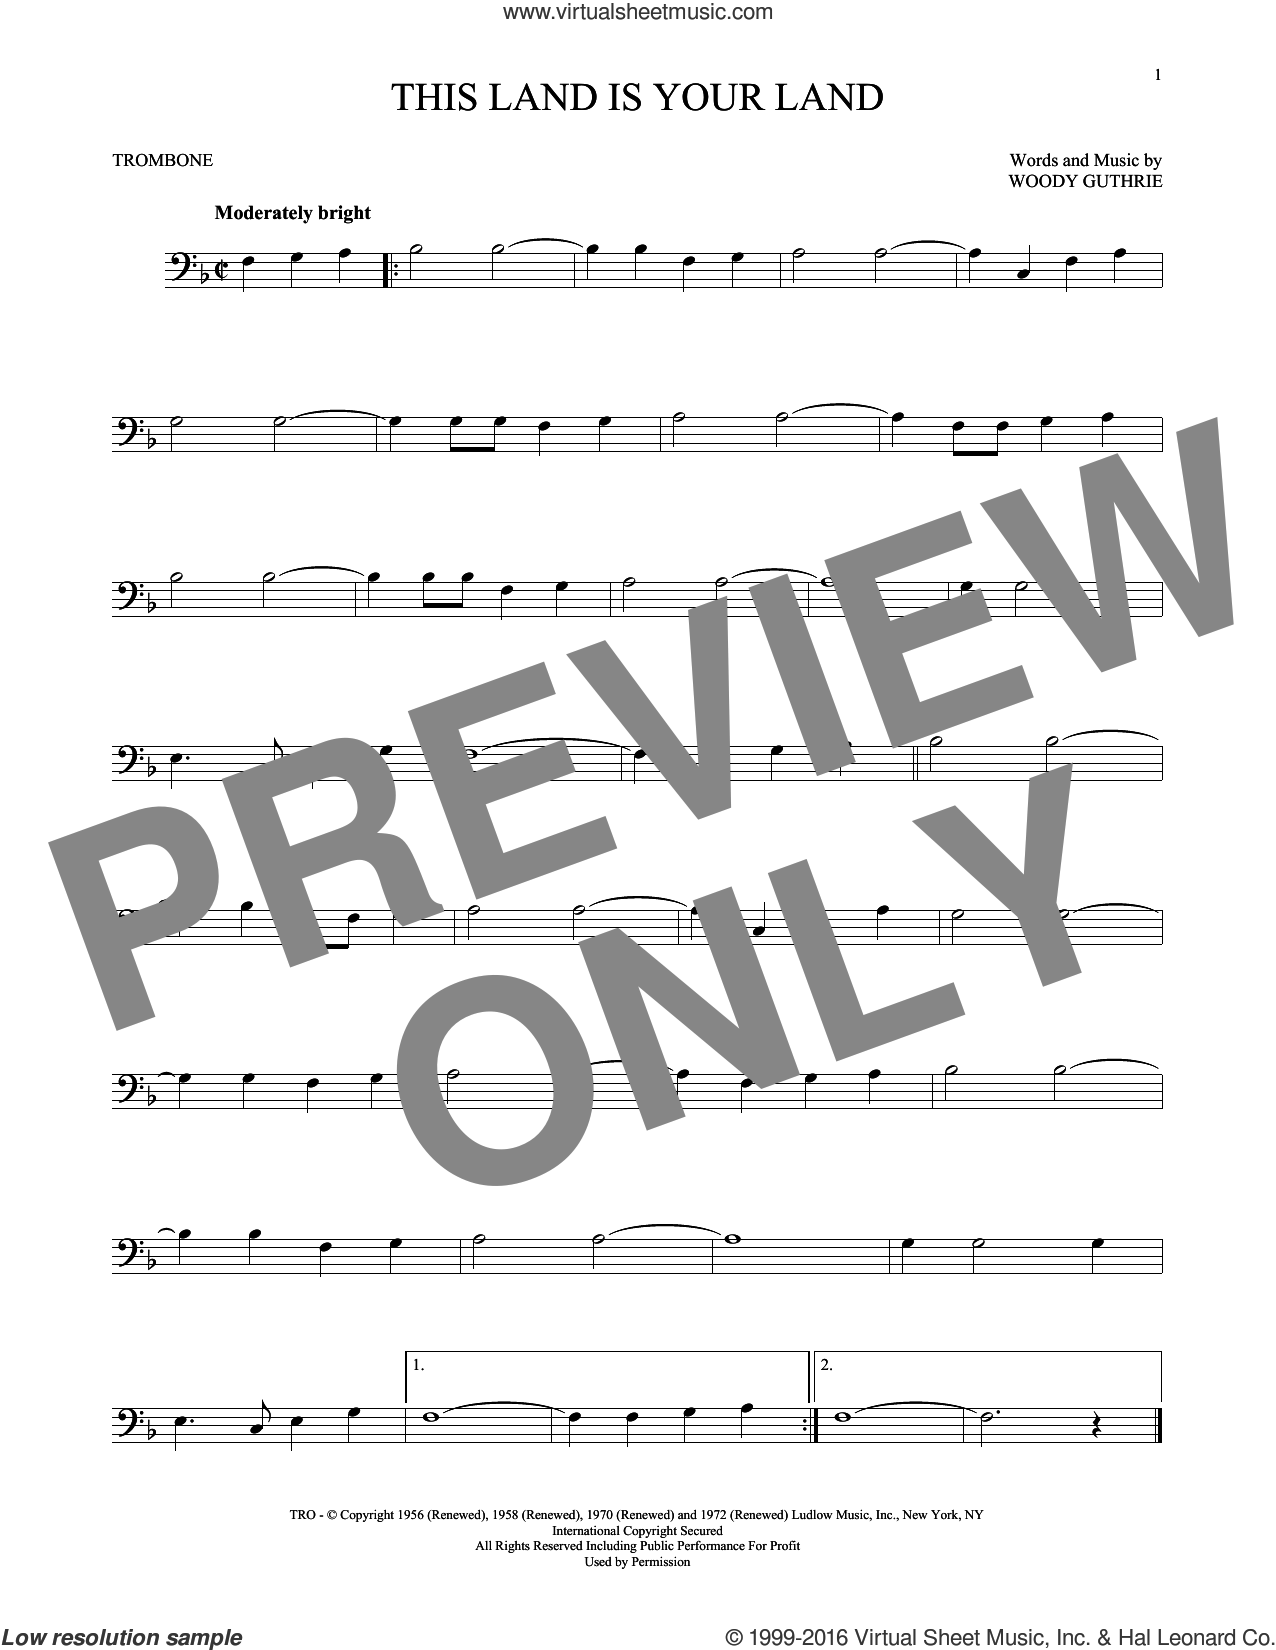 This Land Is Your Land sheet music for trombone solo by Woody Guthrie, intermediate skill level